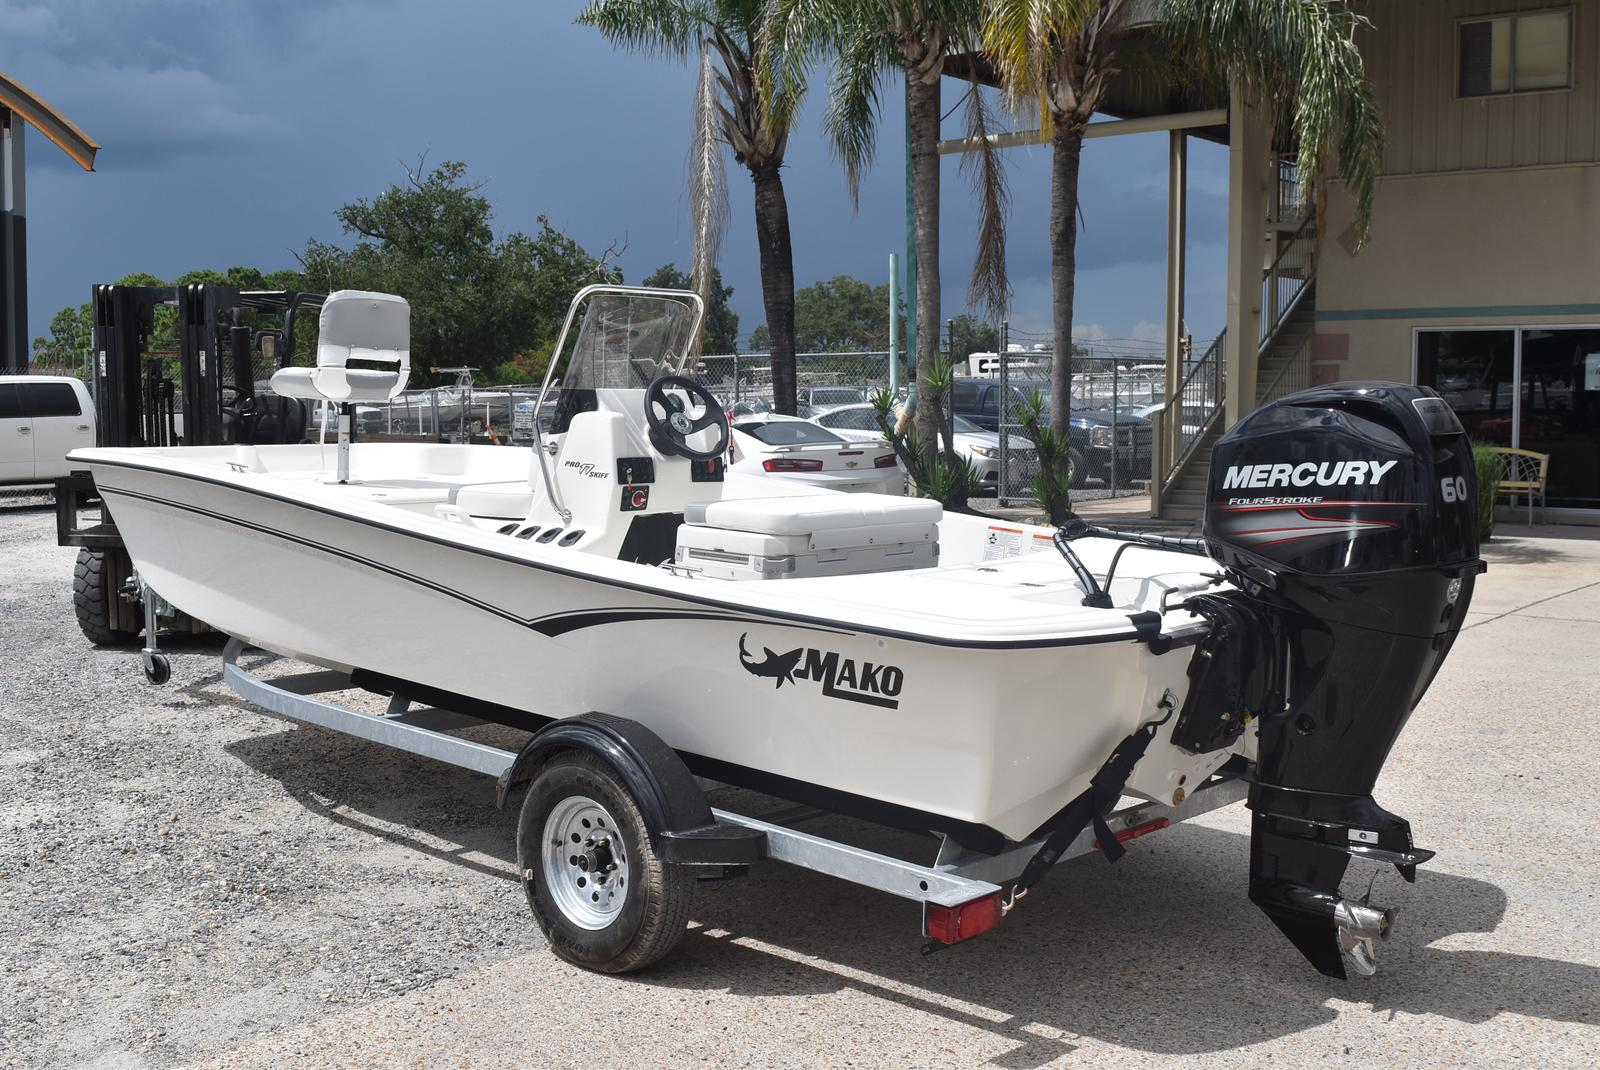 2020 Mako boat for sale, model of the boat is Pro Skiff 17, 75 ELPT & Image # 164 of 702